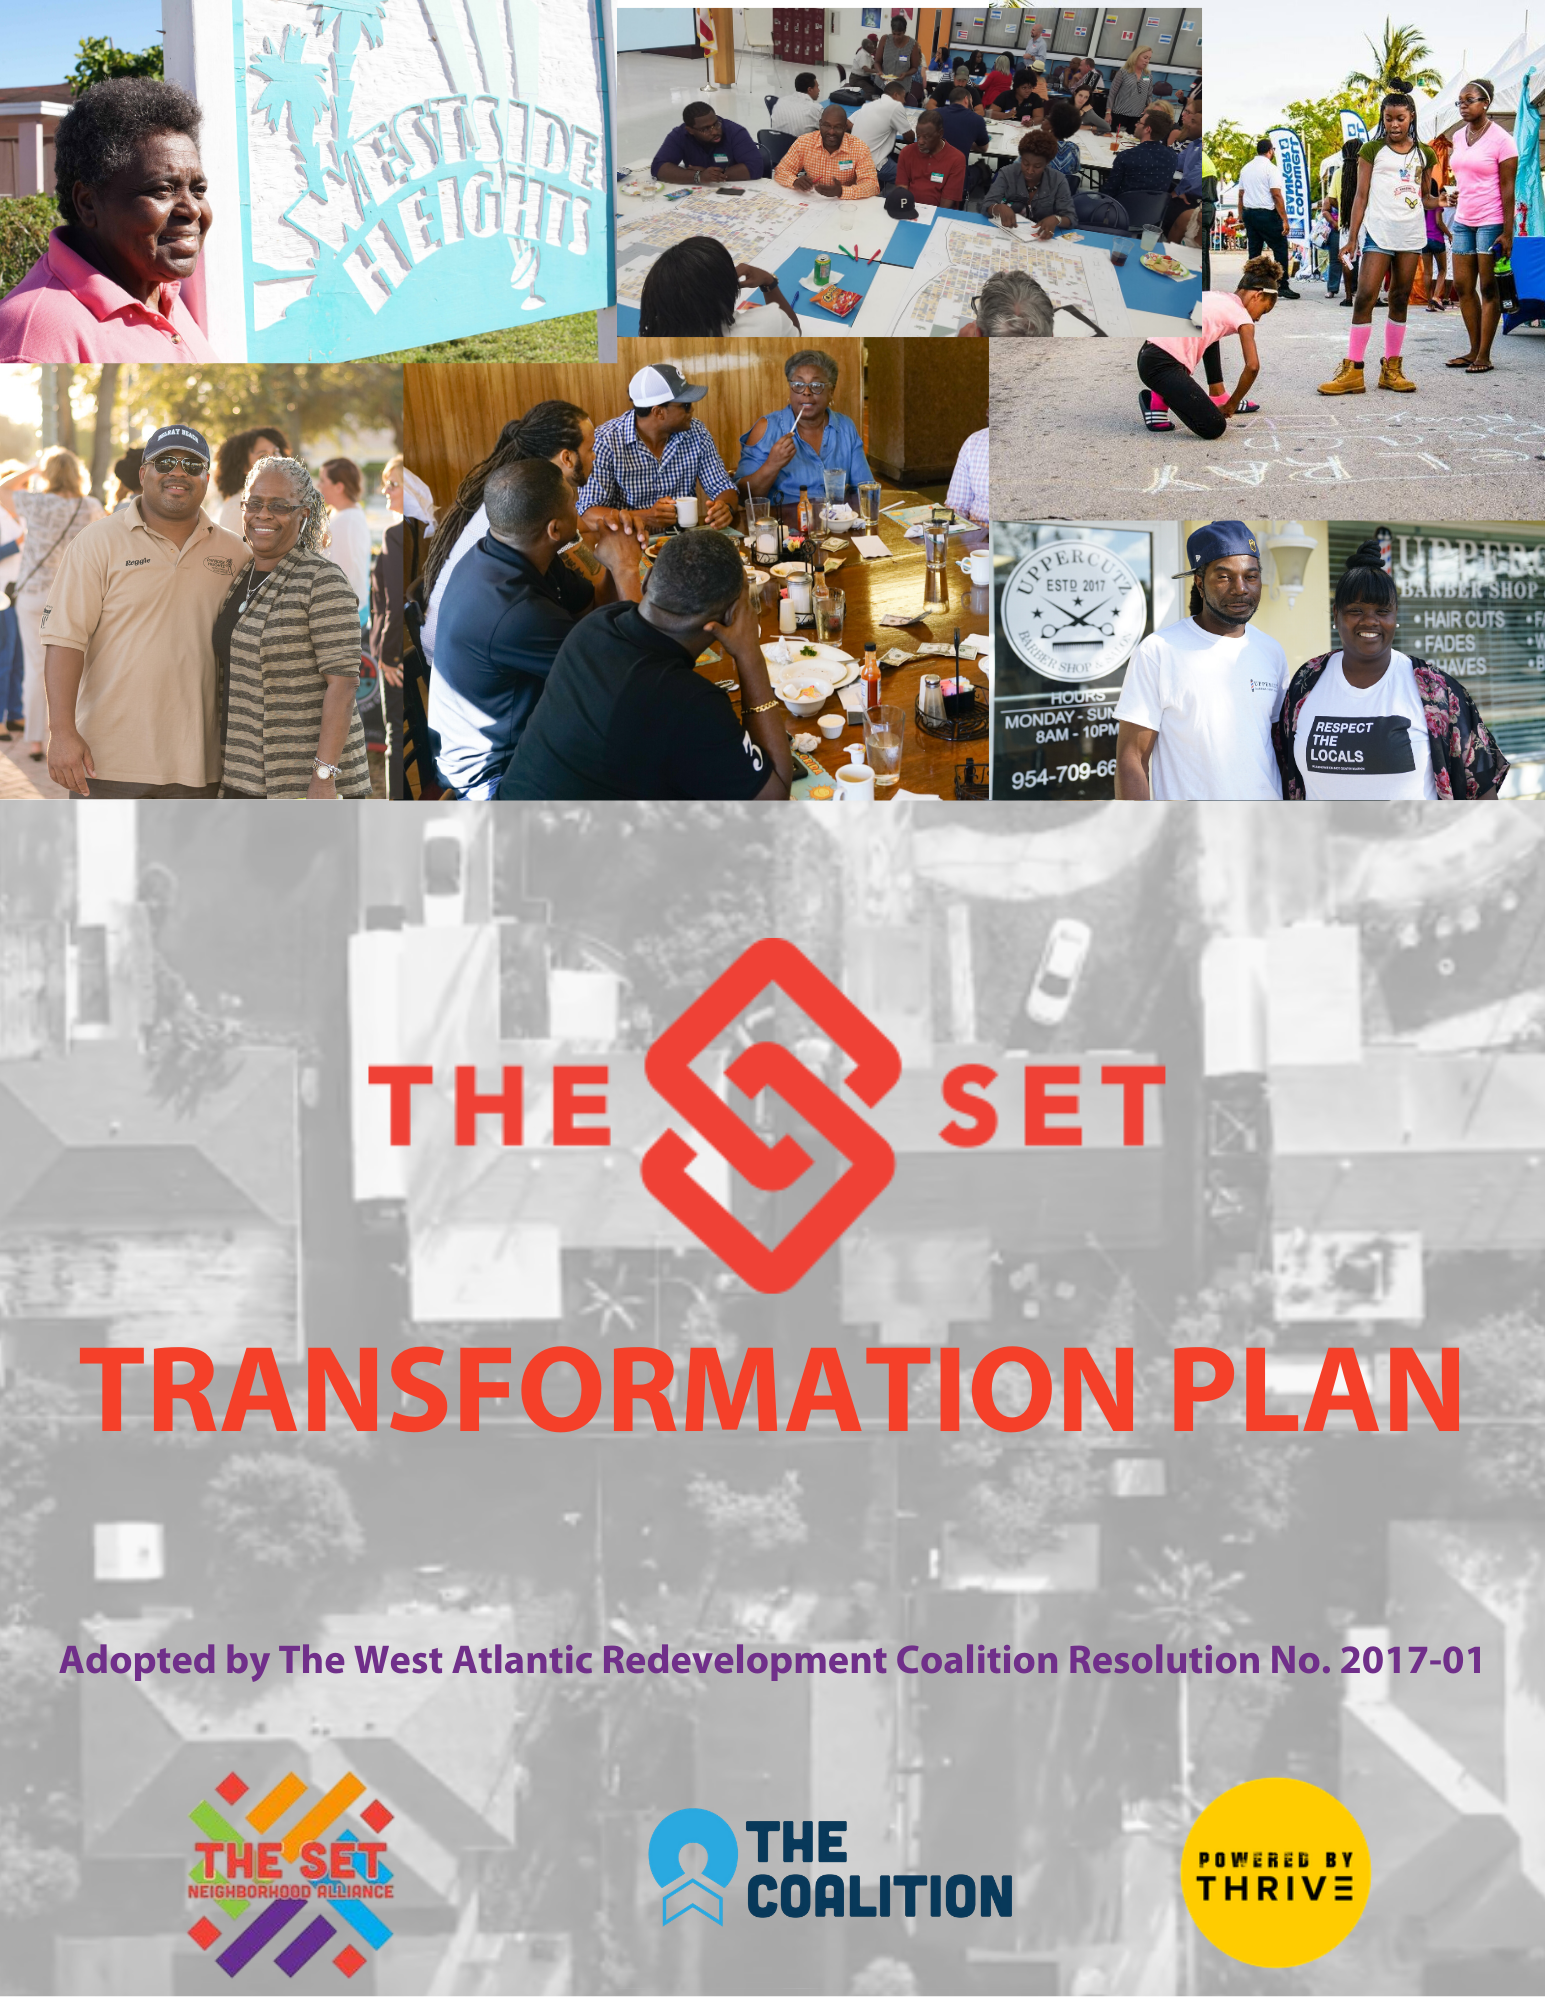 THE SET TRANSFORMATION PLAN COVER (2)